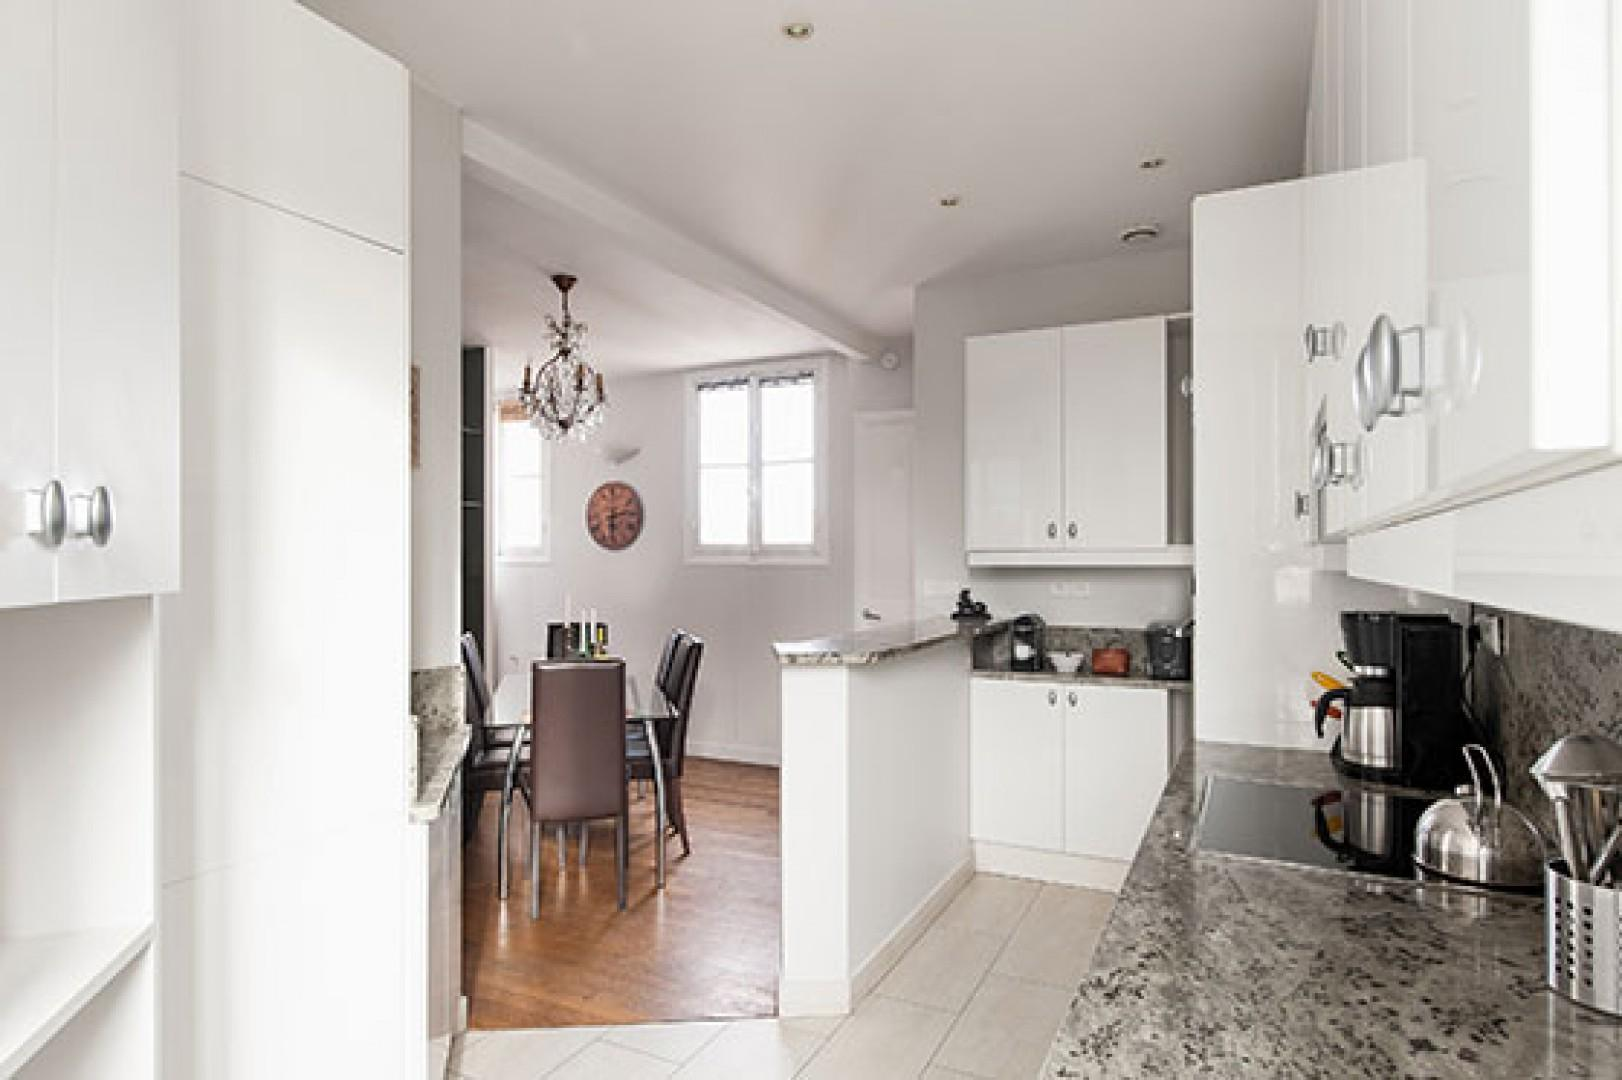 The beautifully designed open-plan kitchen and dining area is great for entertaining.